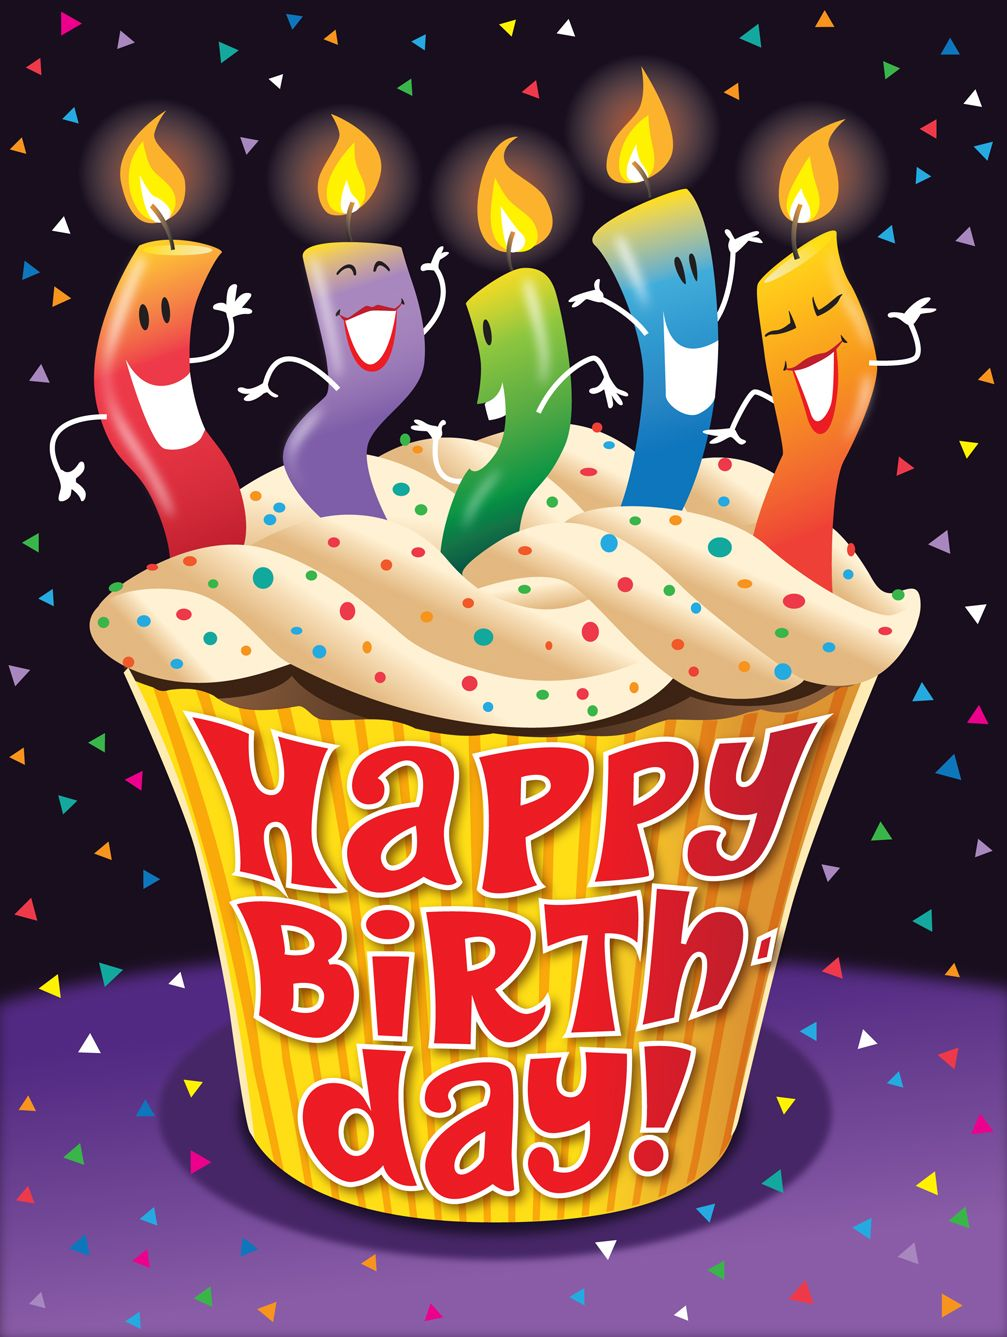 Groovy Happy Birthday Dancing Candles Design By Larryjonesillustration Personalised Birthday Cards Veneteletsinfo